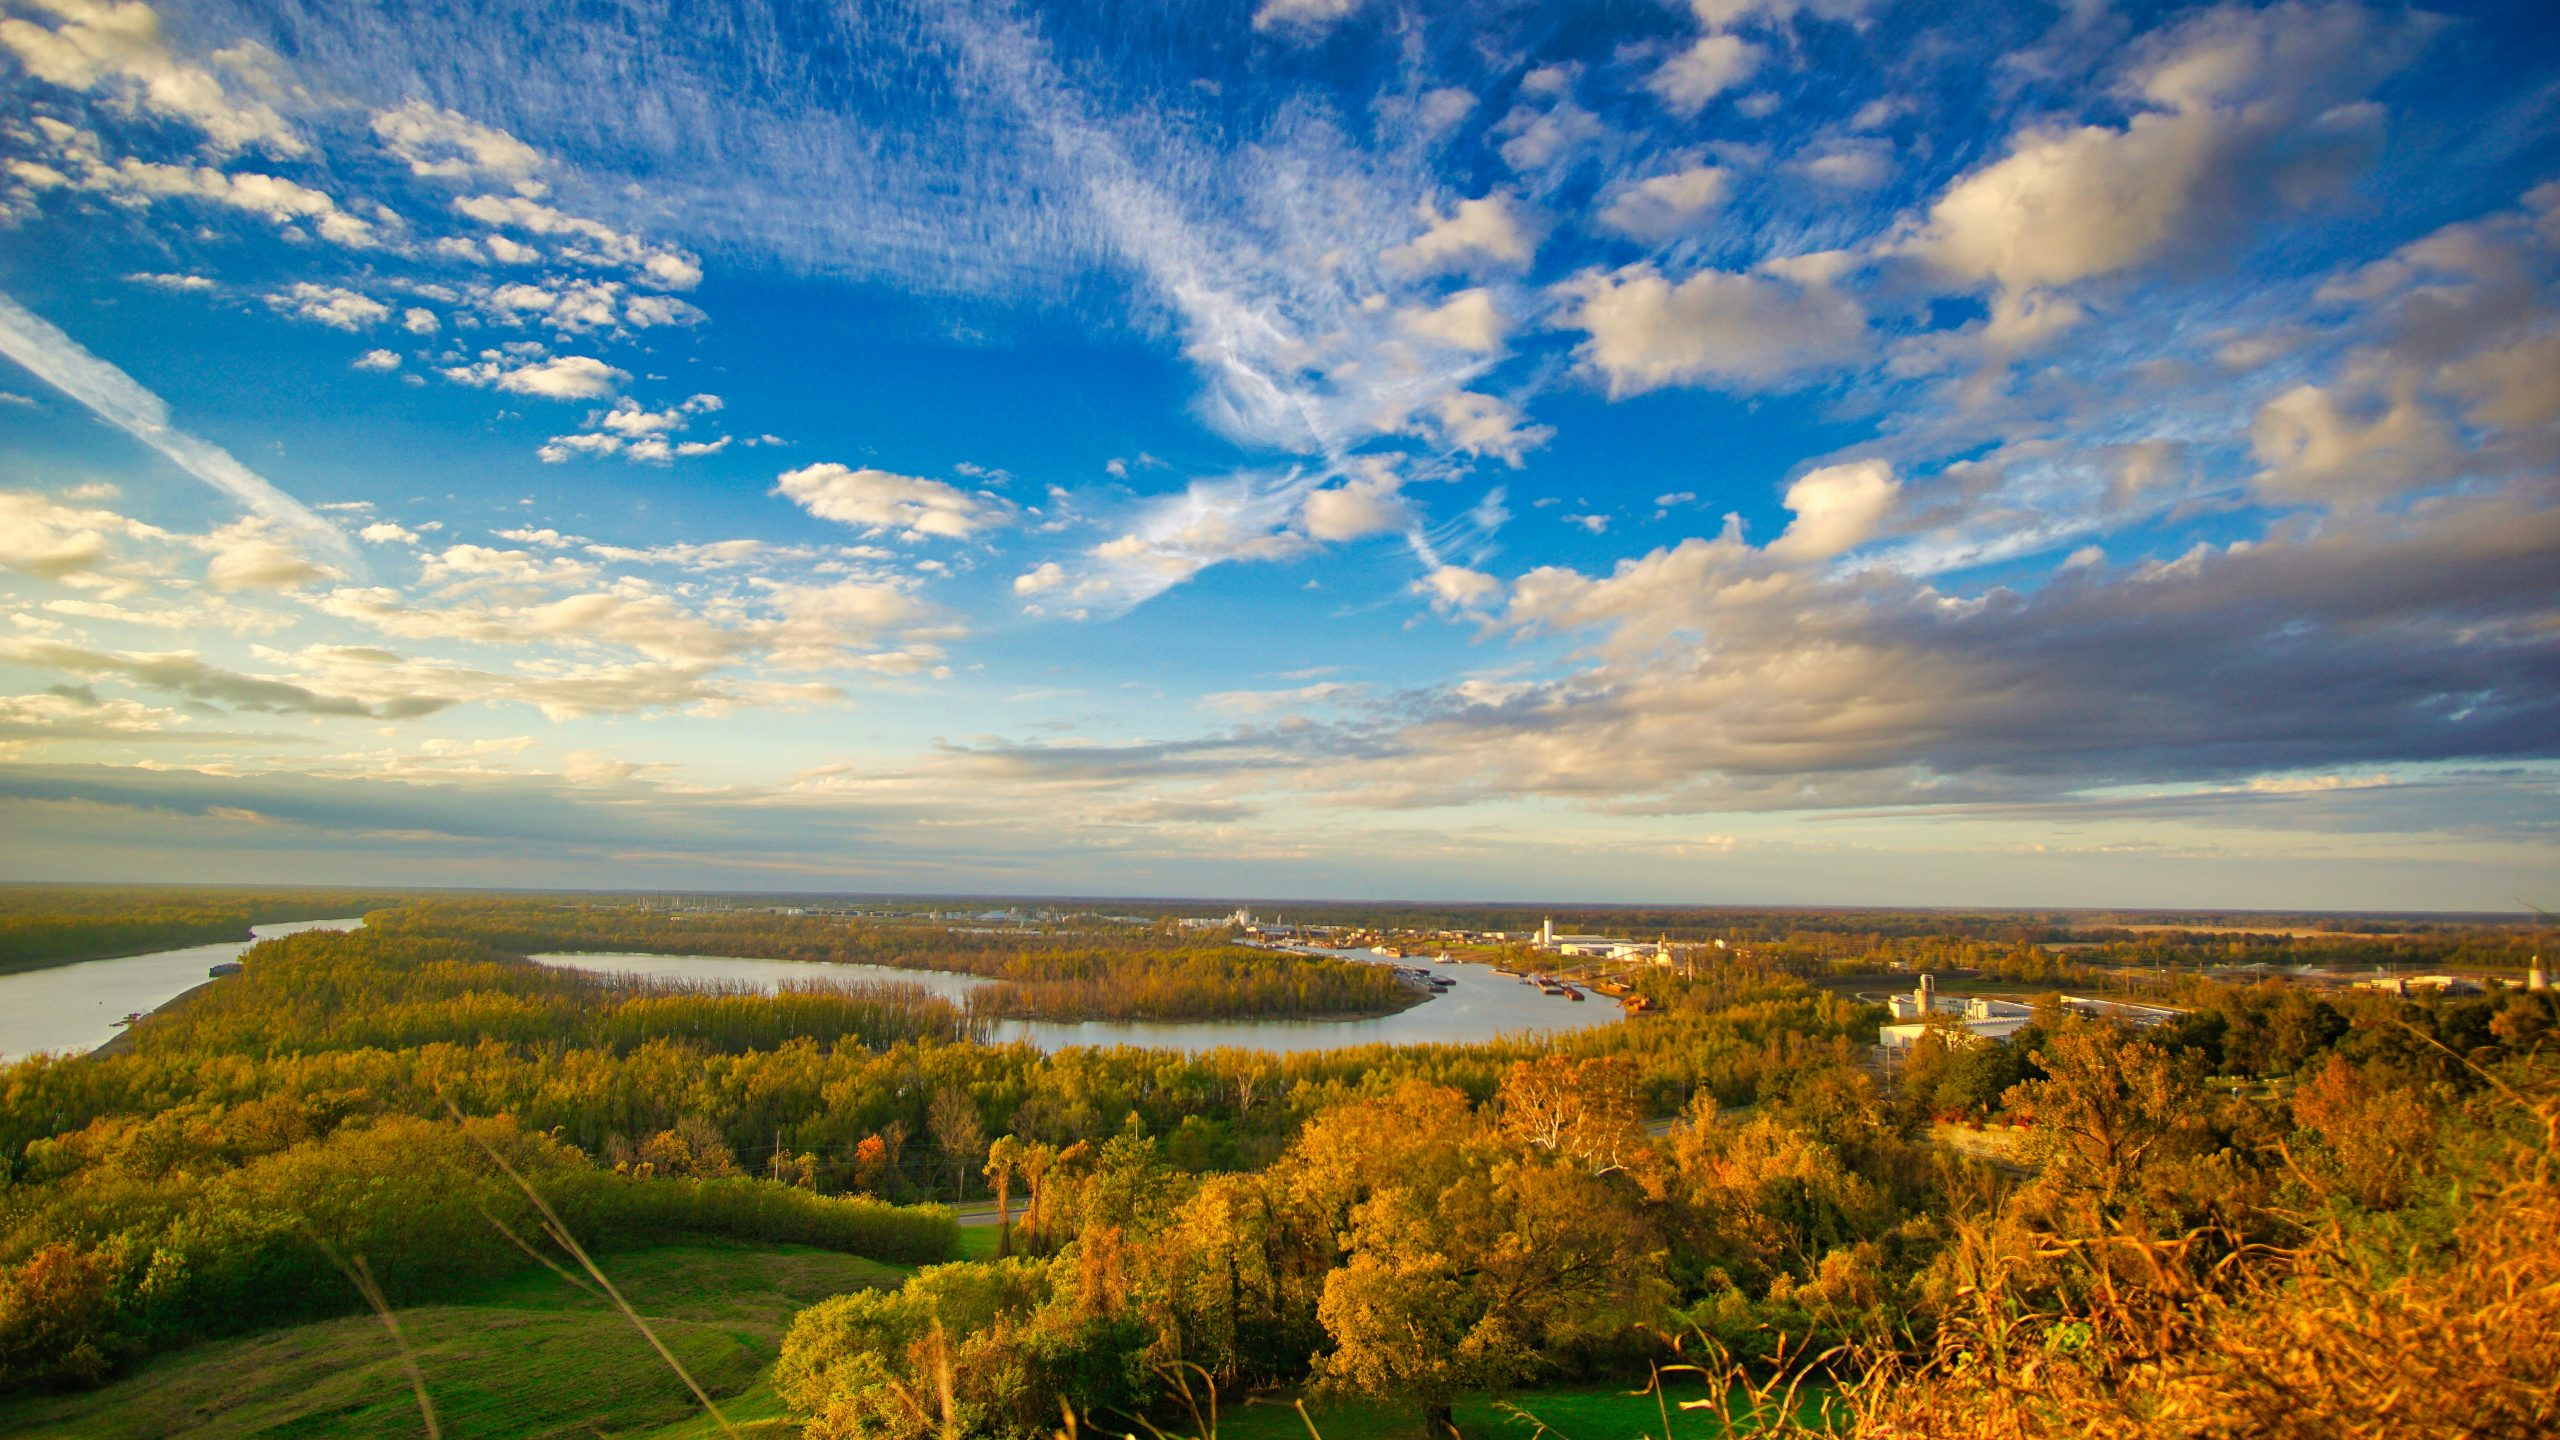 View of the Mississippi river